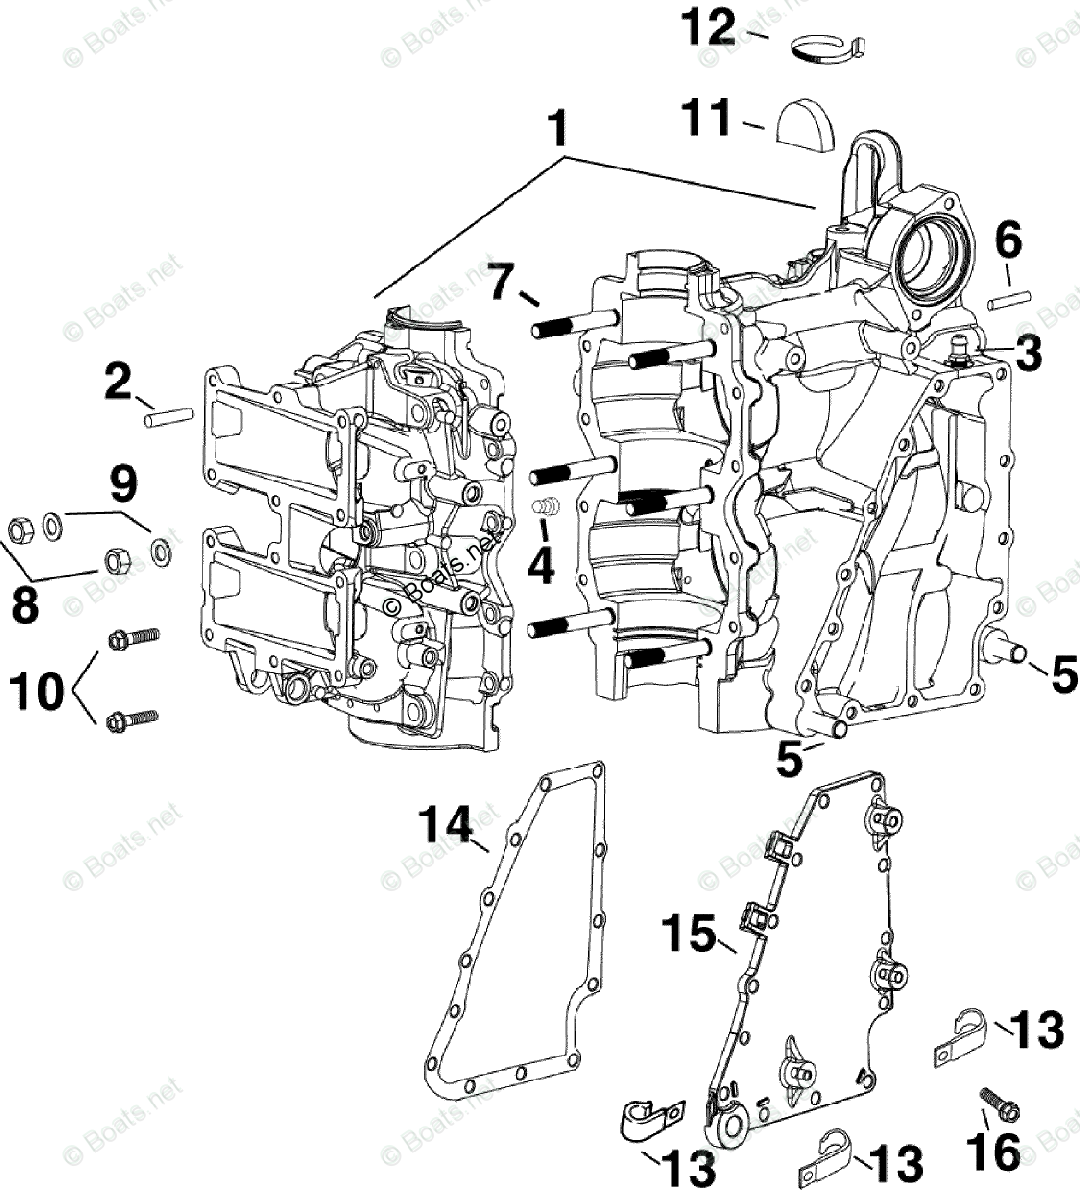 Evinrude Outboard Parts By Hp 40hp Oem Parts Diagram For